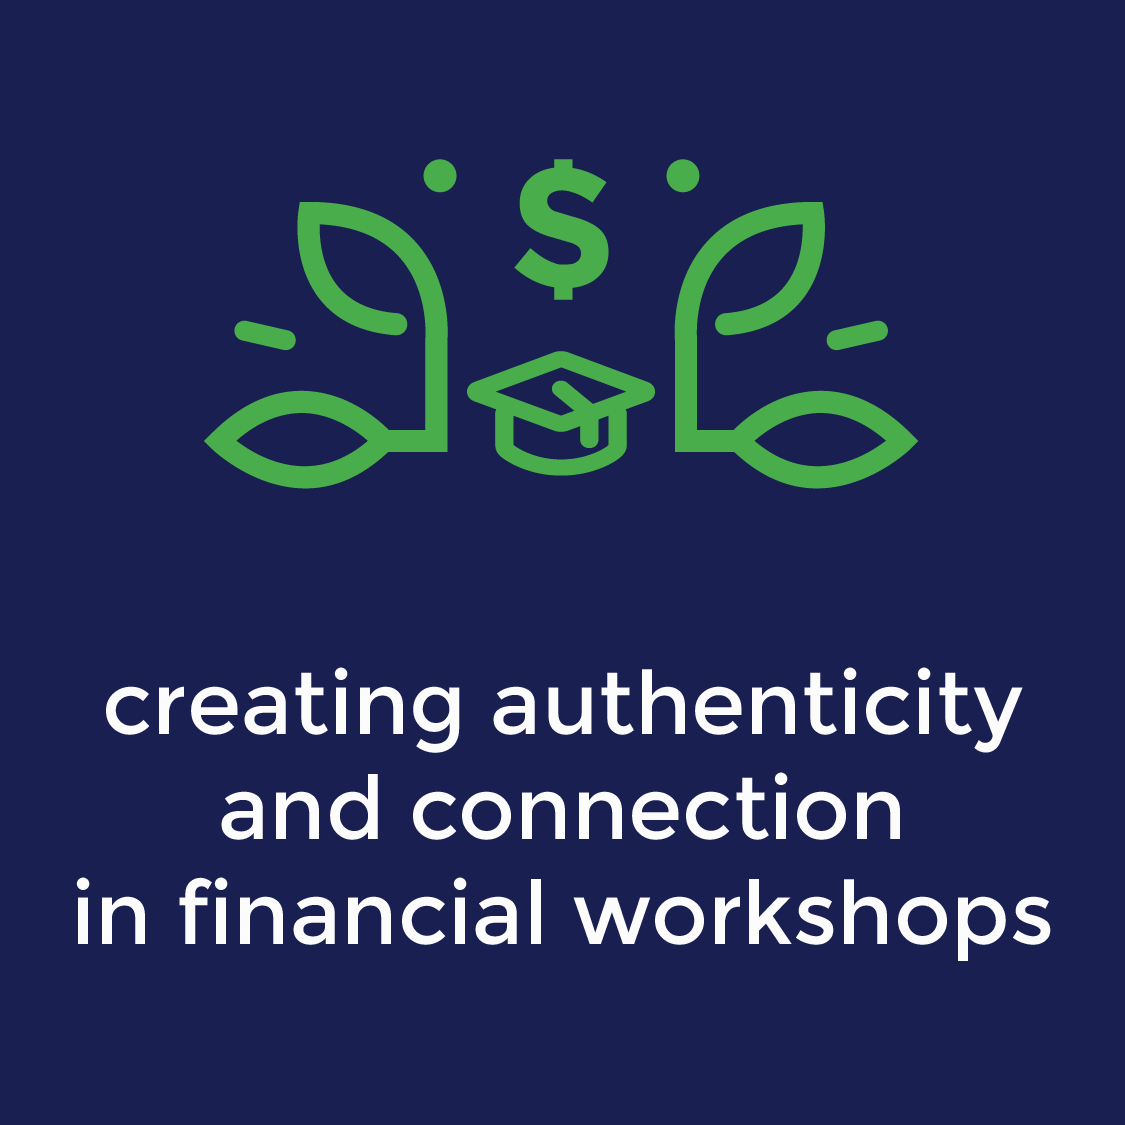 3.19.19 | 2:00-3:00pm EST - In this workshop Colin Ryan will provide a behind-the-scenes look at his 2018 PNC Bank live-audience webcast at Bowling Green University to teach his personal playbook on how to identify moments for authenticity.He will cover skills like:● How to get your client/audience interacting● How to teach depressing but important information● How to motivate your clients to be proactive● The power of sharing money mistakes● How to humanize your office with simple storytelling tricks● How to build trust by being a presenter who listensAttendees will also have an opportunity to ask Colin about their challenges when it comes to audience connection.Presenter: Colin Ryan, Colin Ryan Speaks